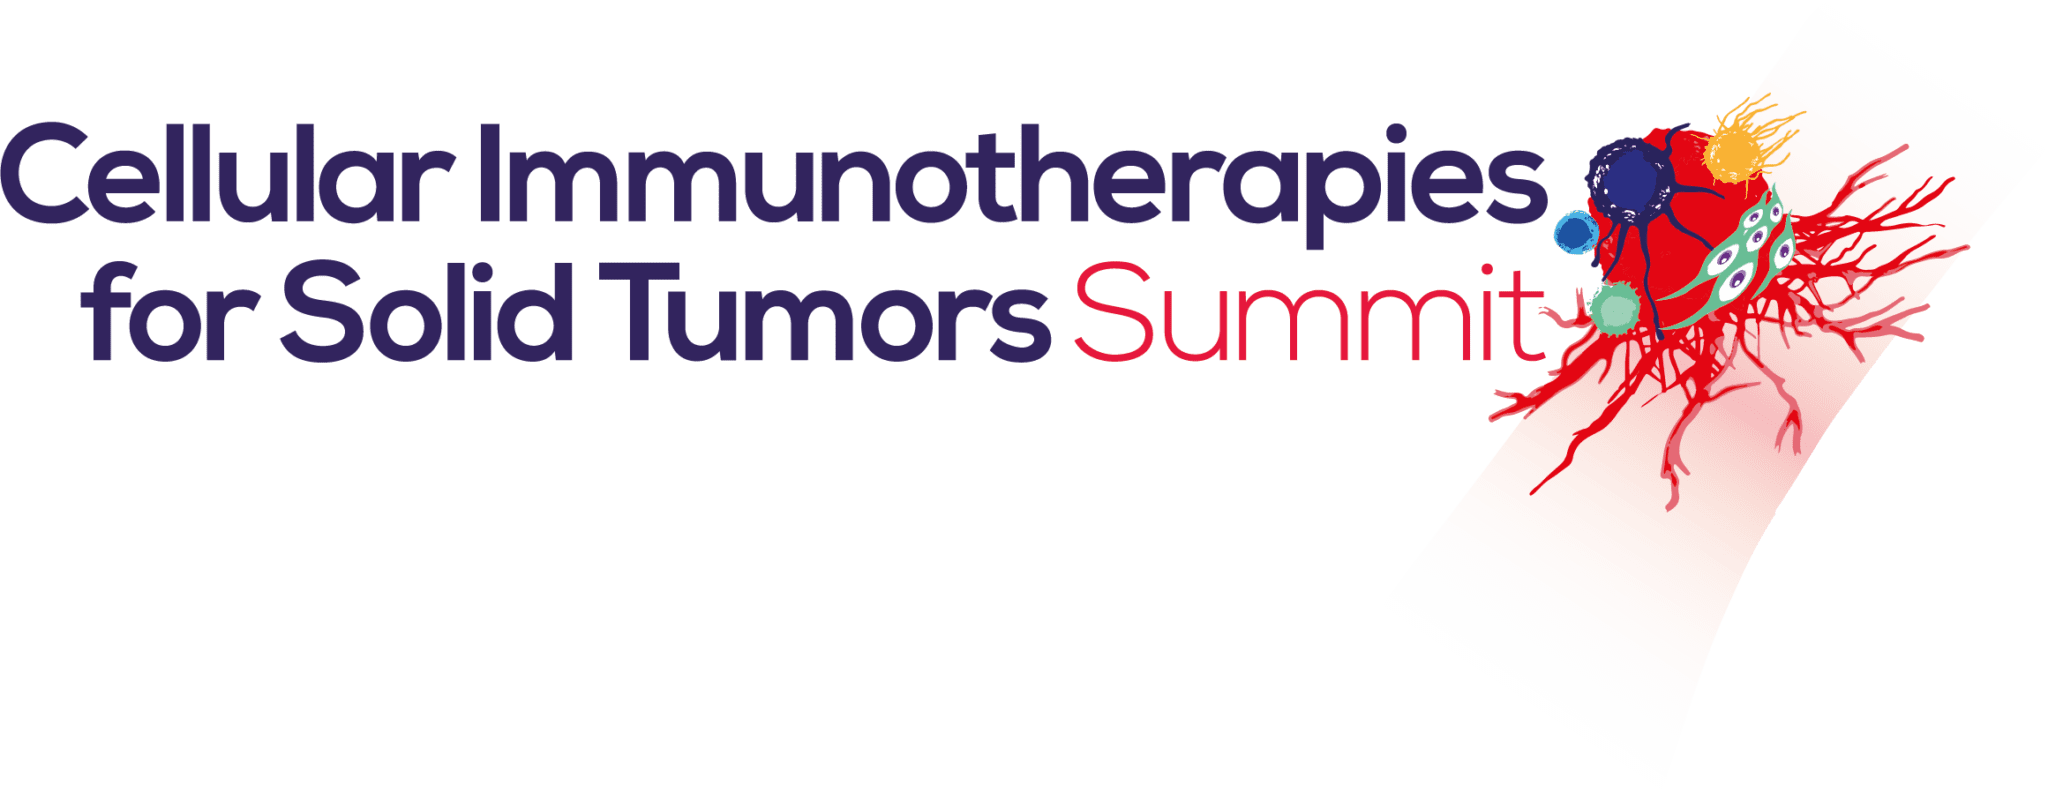 Cellular-Immunotherapies-for-Solid-Tumors-logo-2048x794